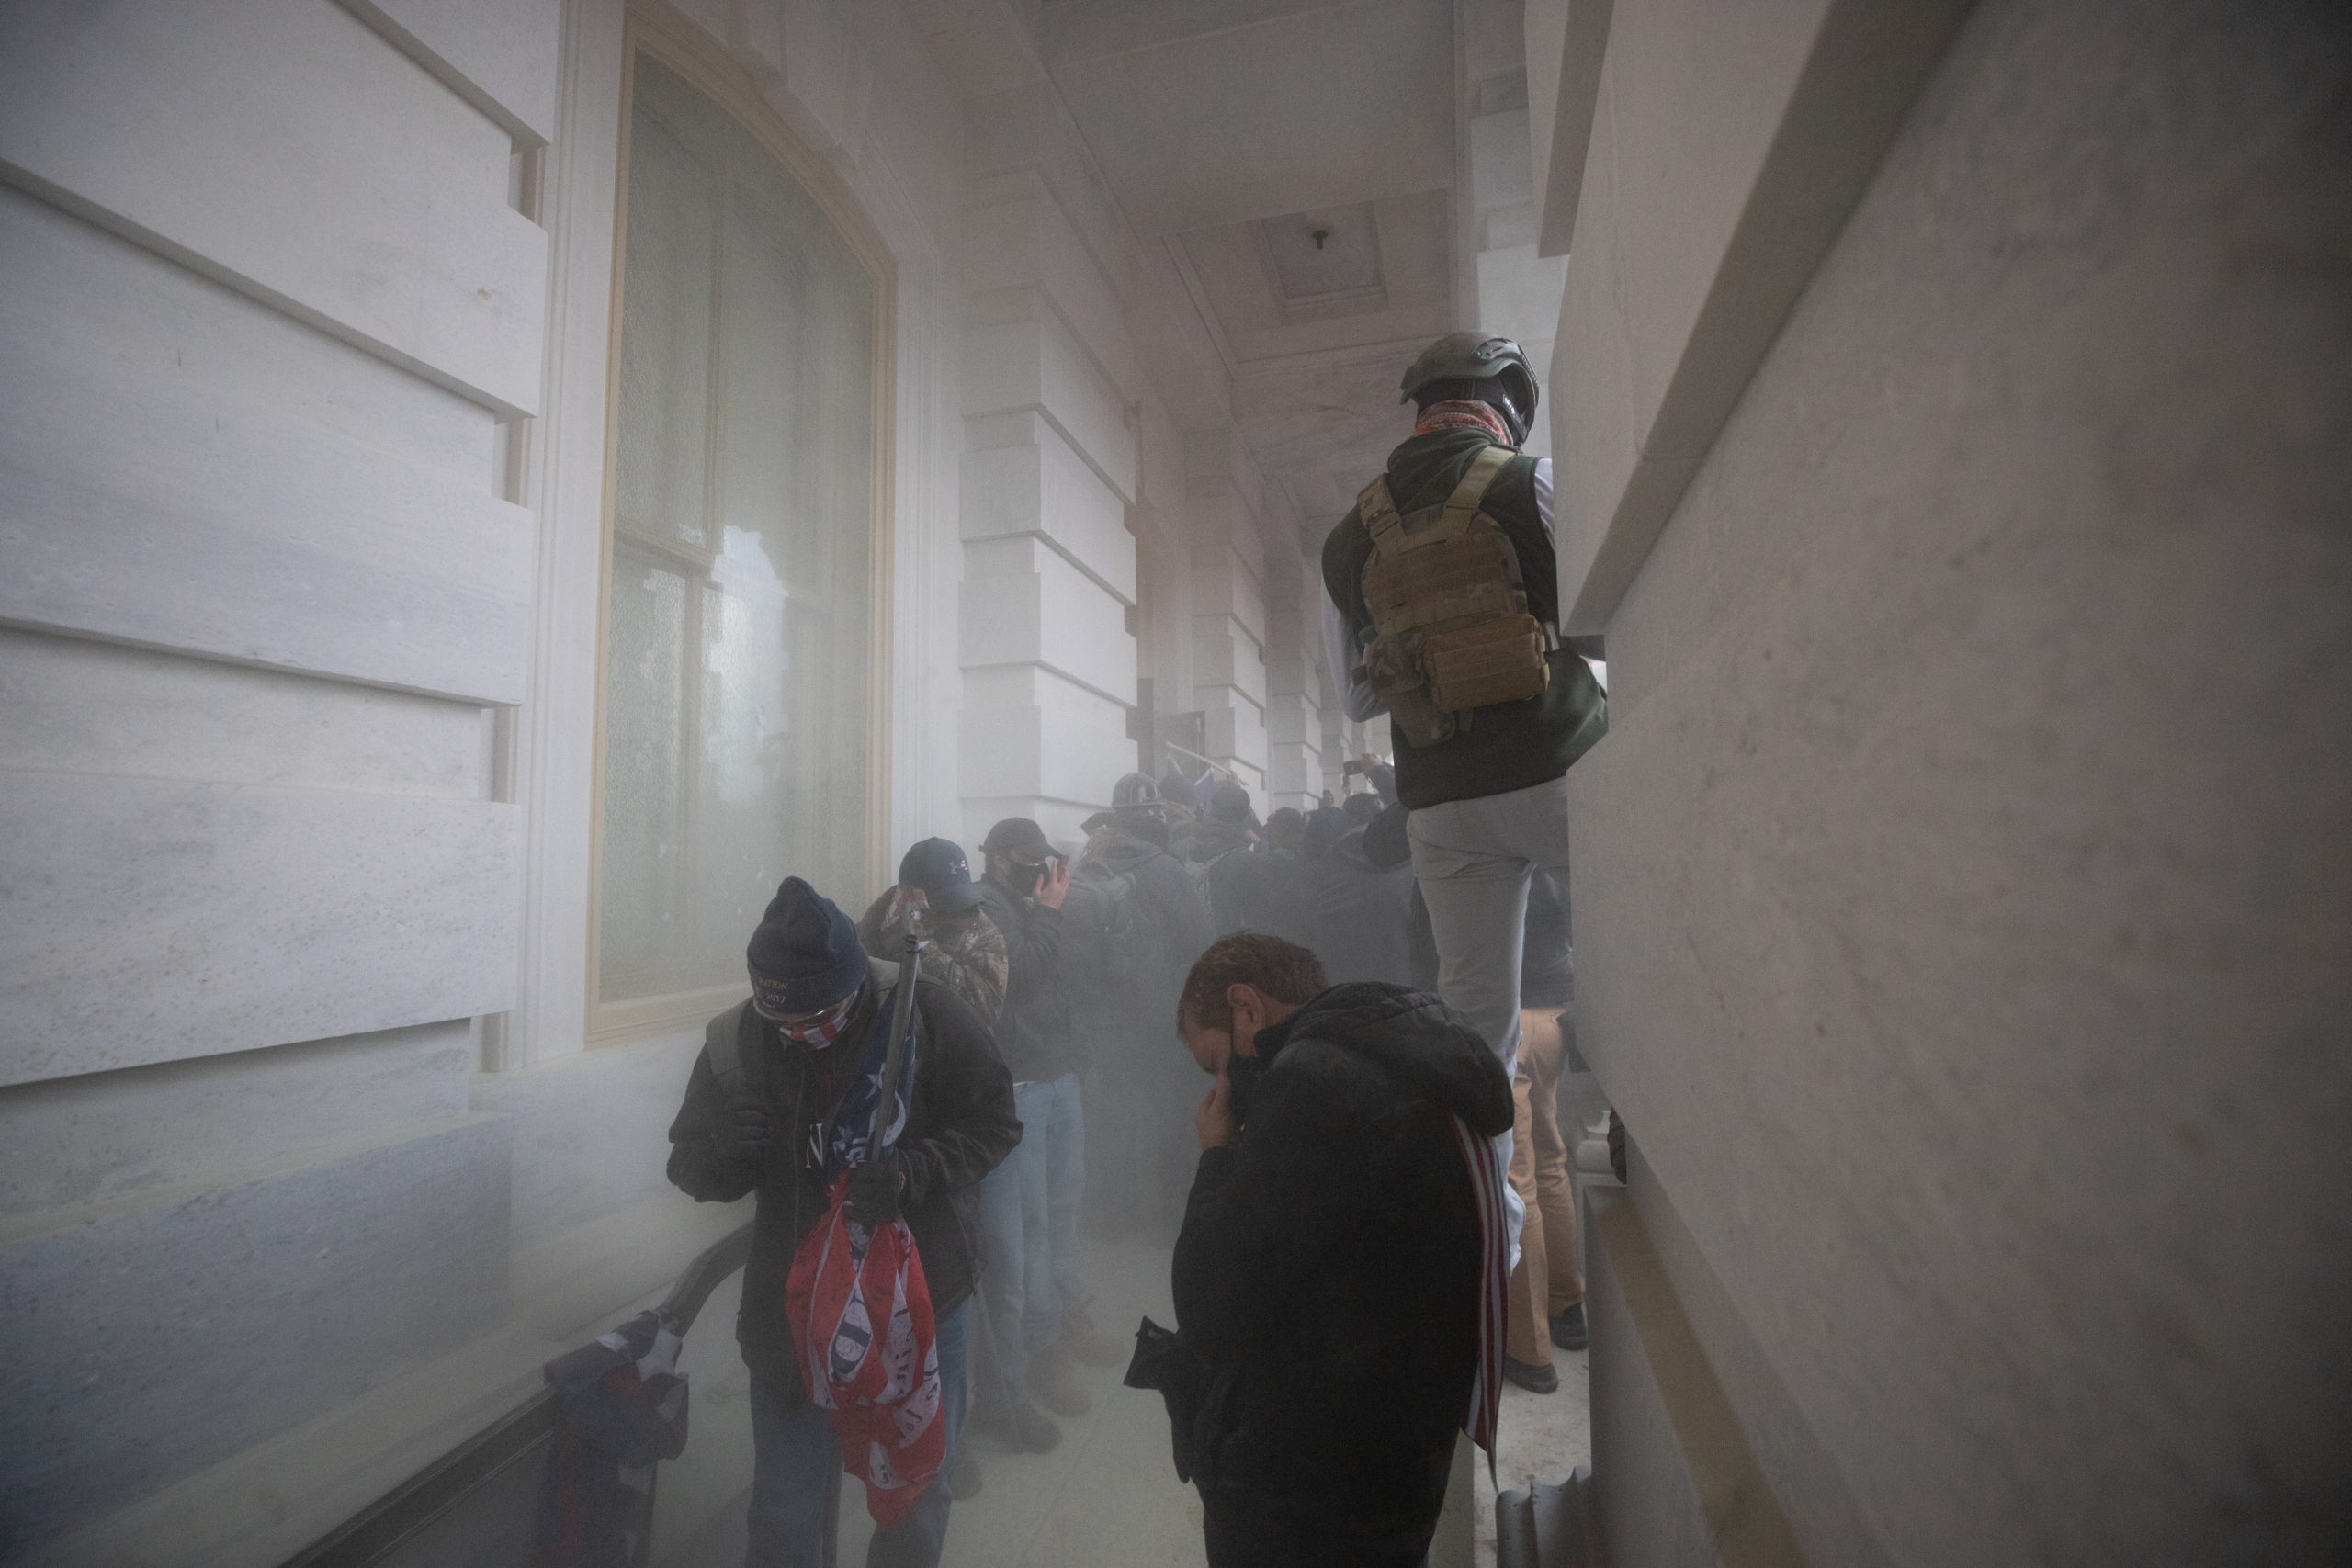 Rioters were sprayed with chemical agents outside the Capitol Building on Jan. 6, 2021 in Washington, D.C. (Kaylee Greenlee - Daily Caller News Foundation)